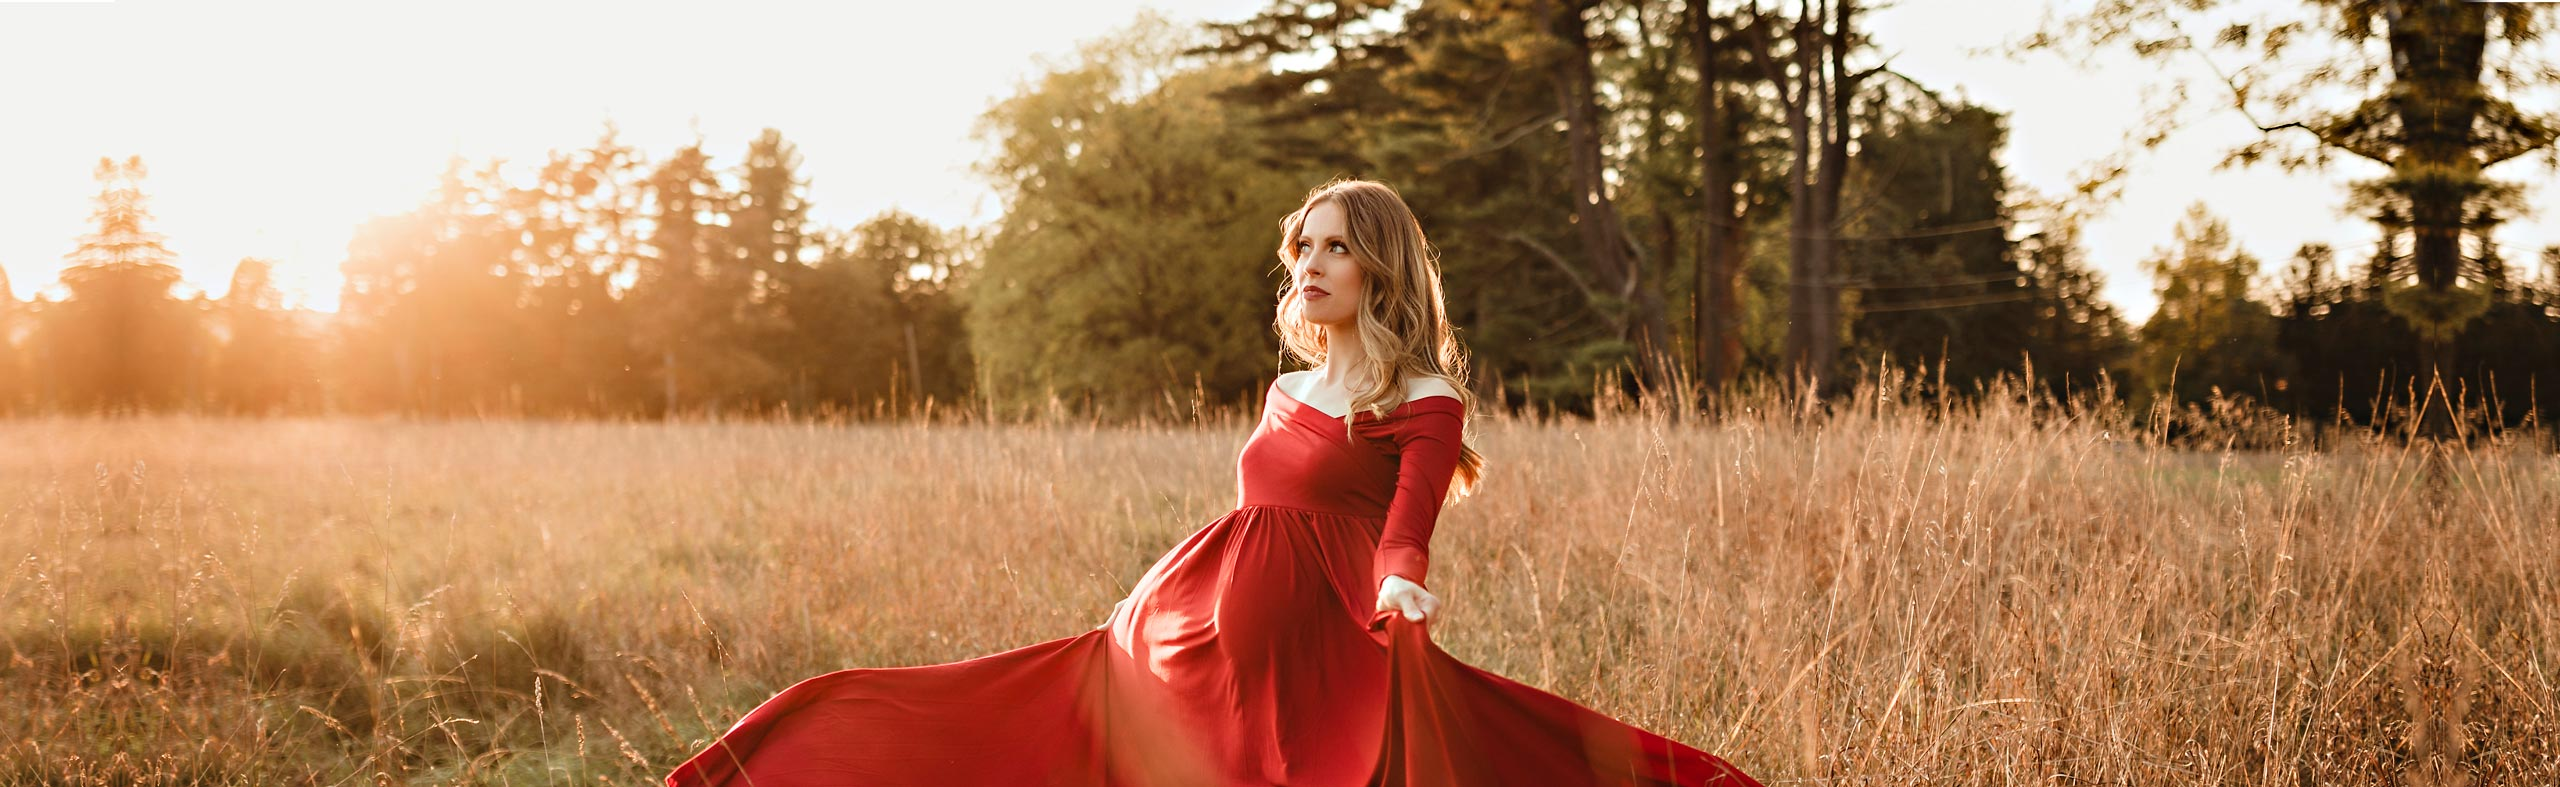 pregnant woman in red dress standing in field